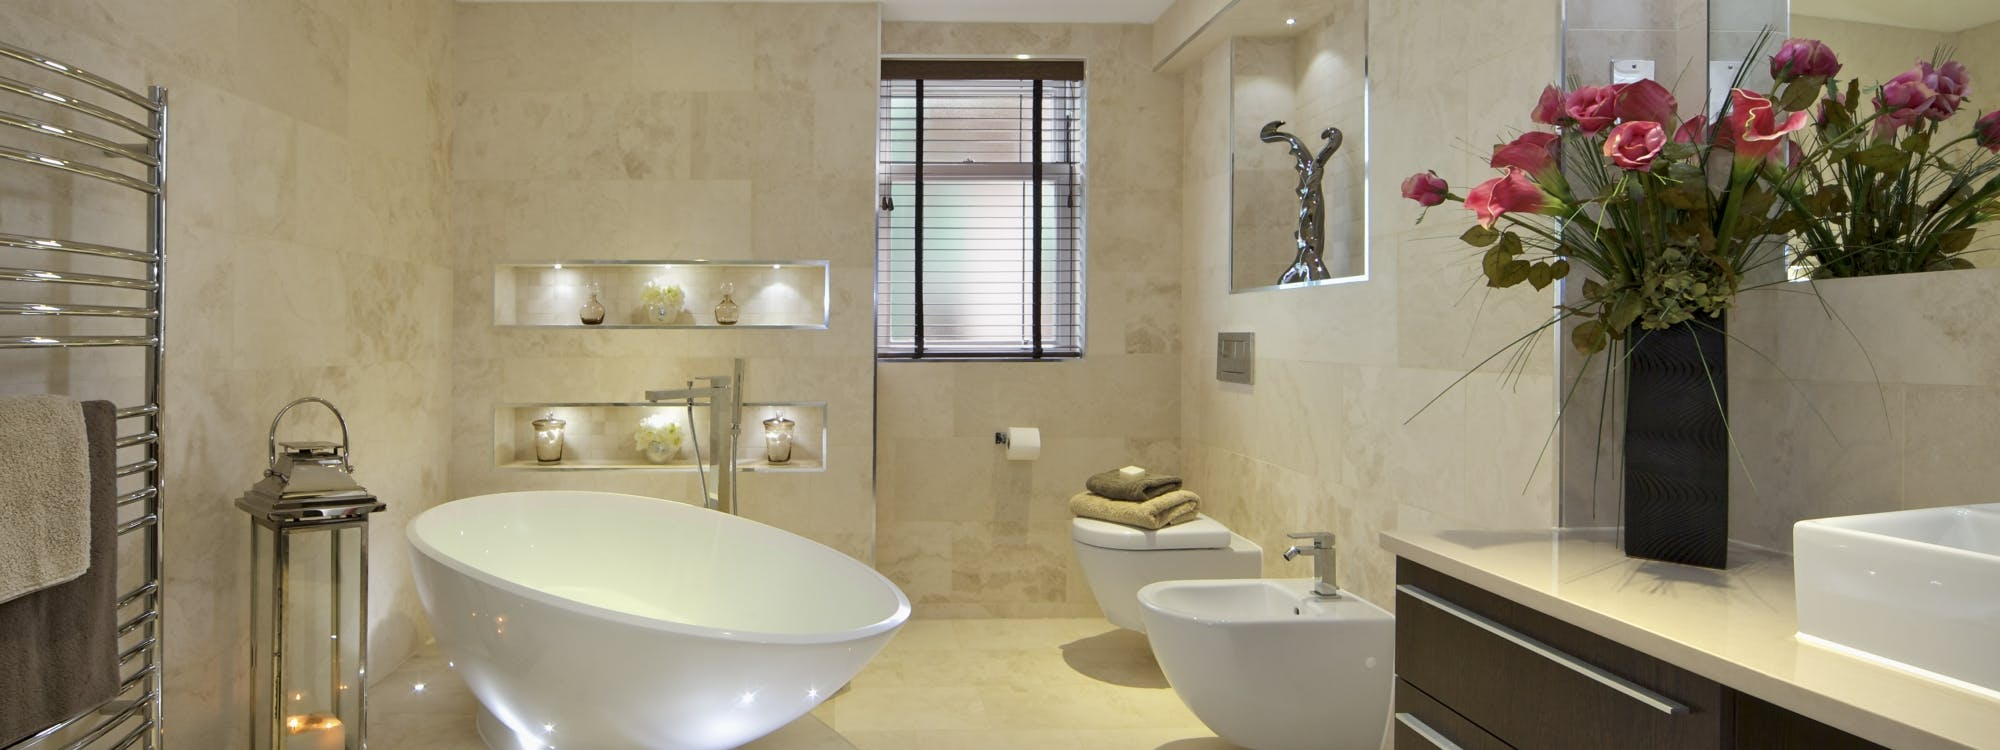 dream bathrooms - designed, supplied & installed